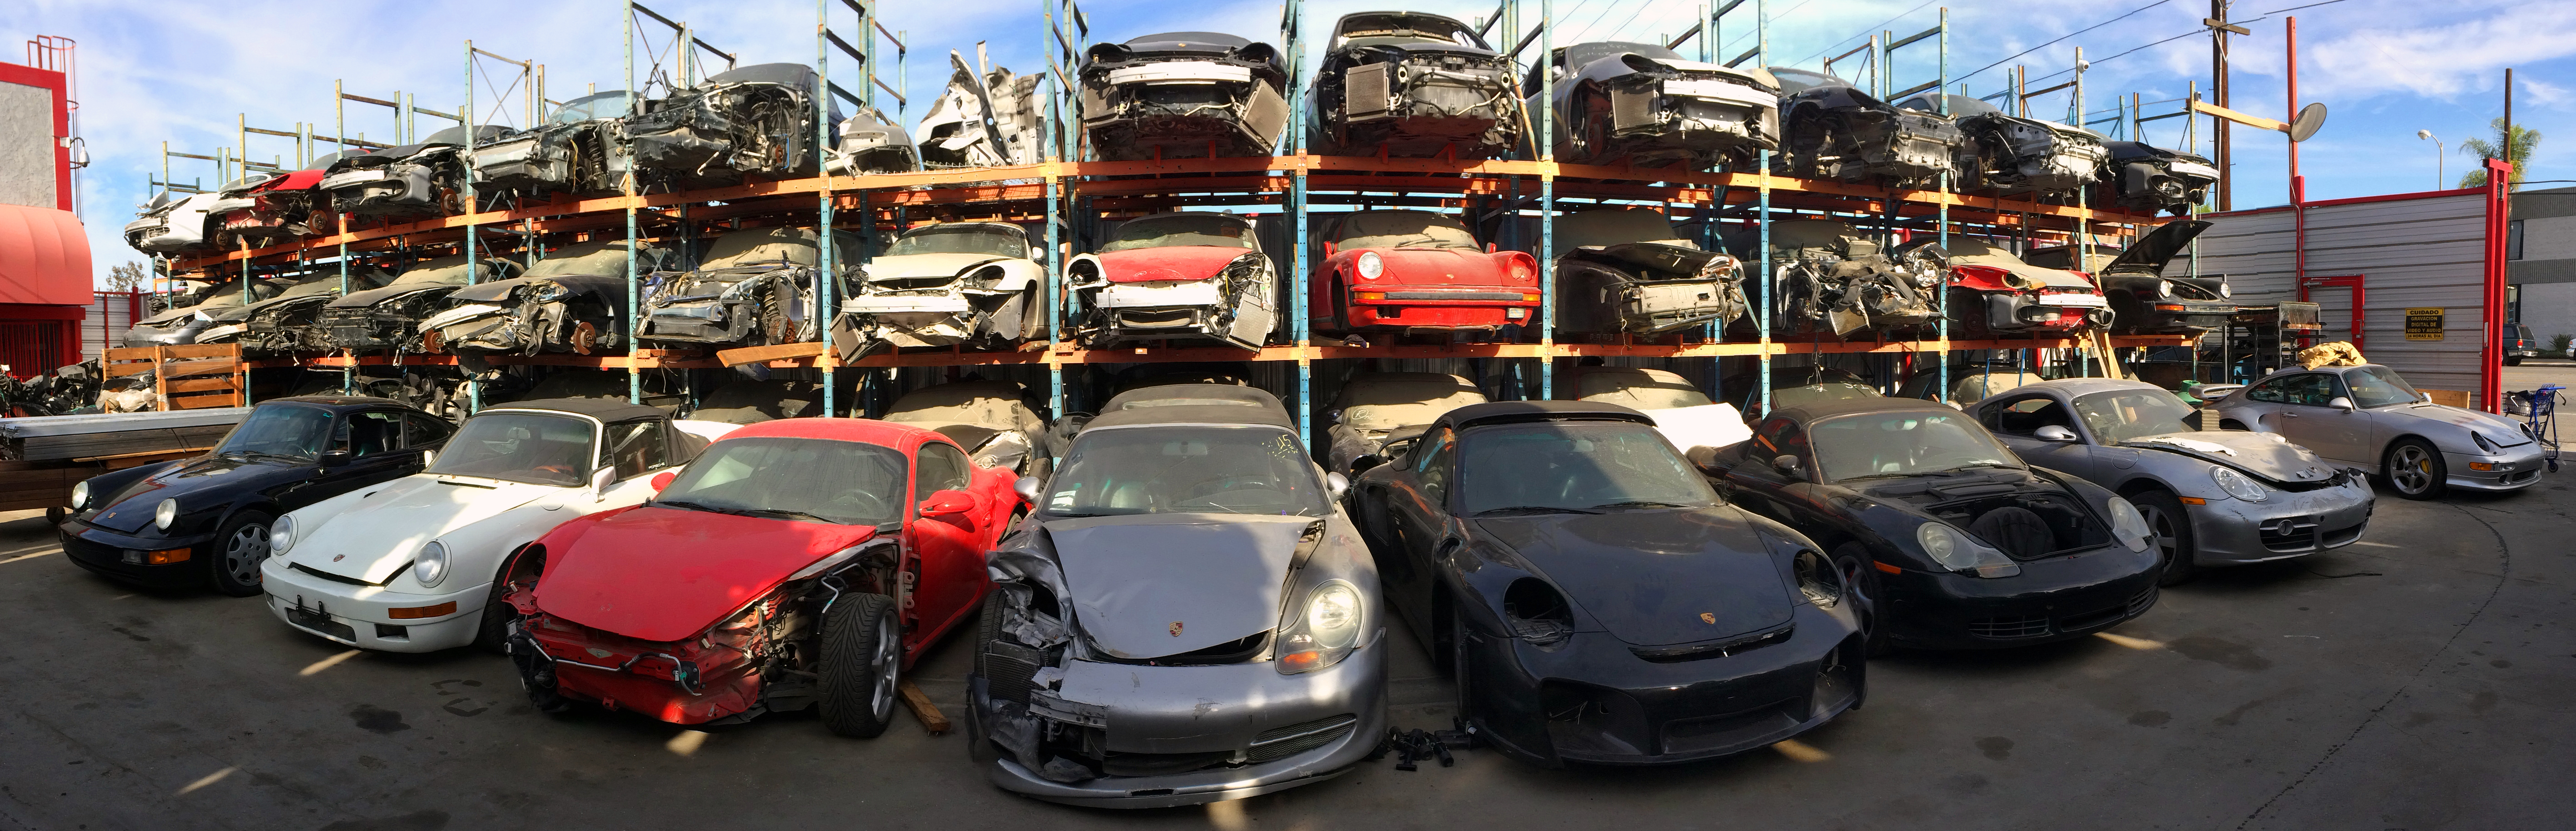 los angeles dismantler specializing in used porsche parts for los angeles dismantler specializing in used porsche parts for boxster cayman 911